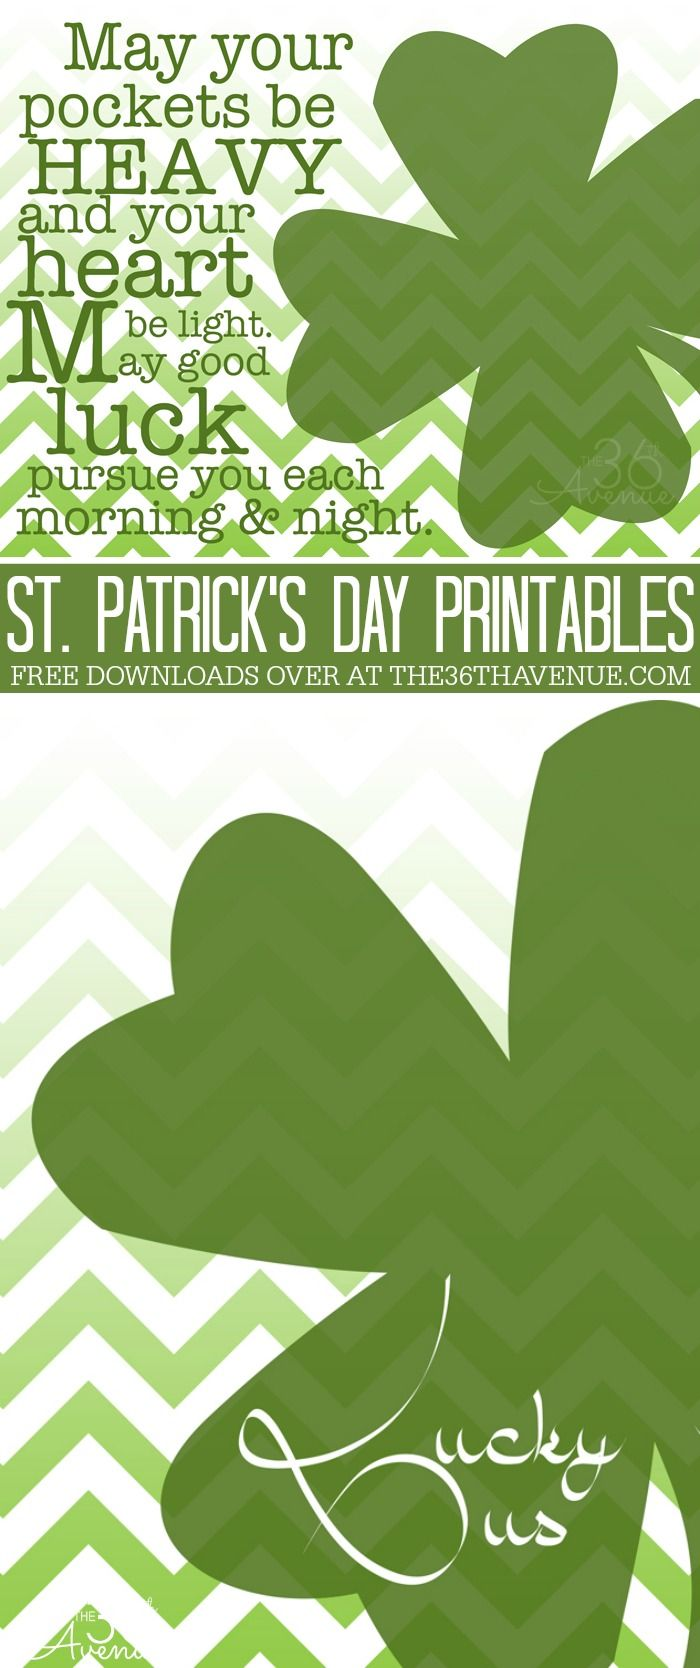 St. Patrick's Day Free Printables at the36thavenue.com Pin it now and print them later!